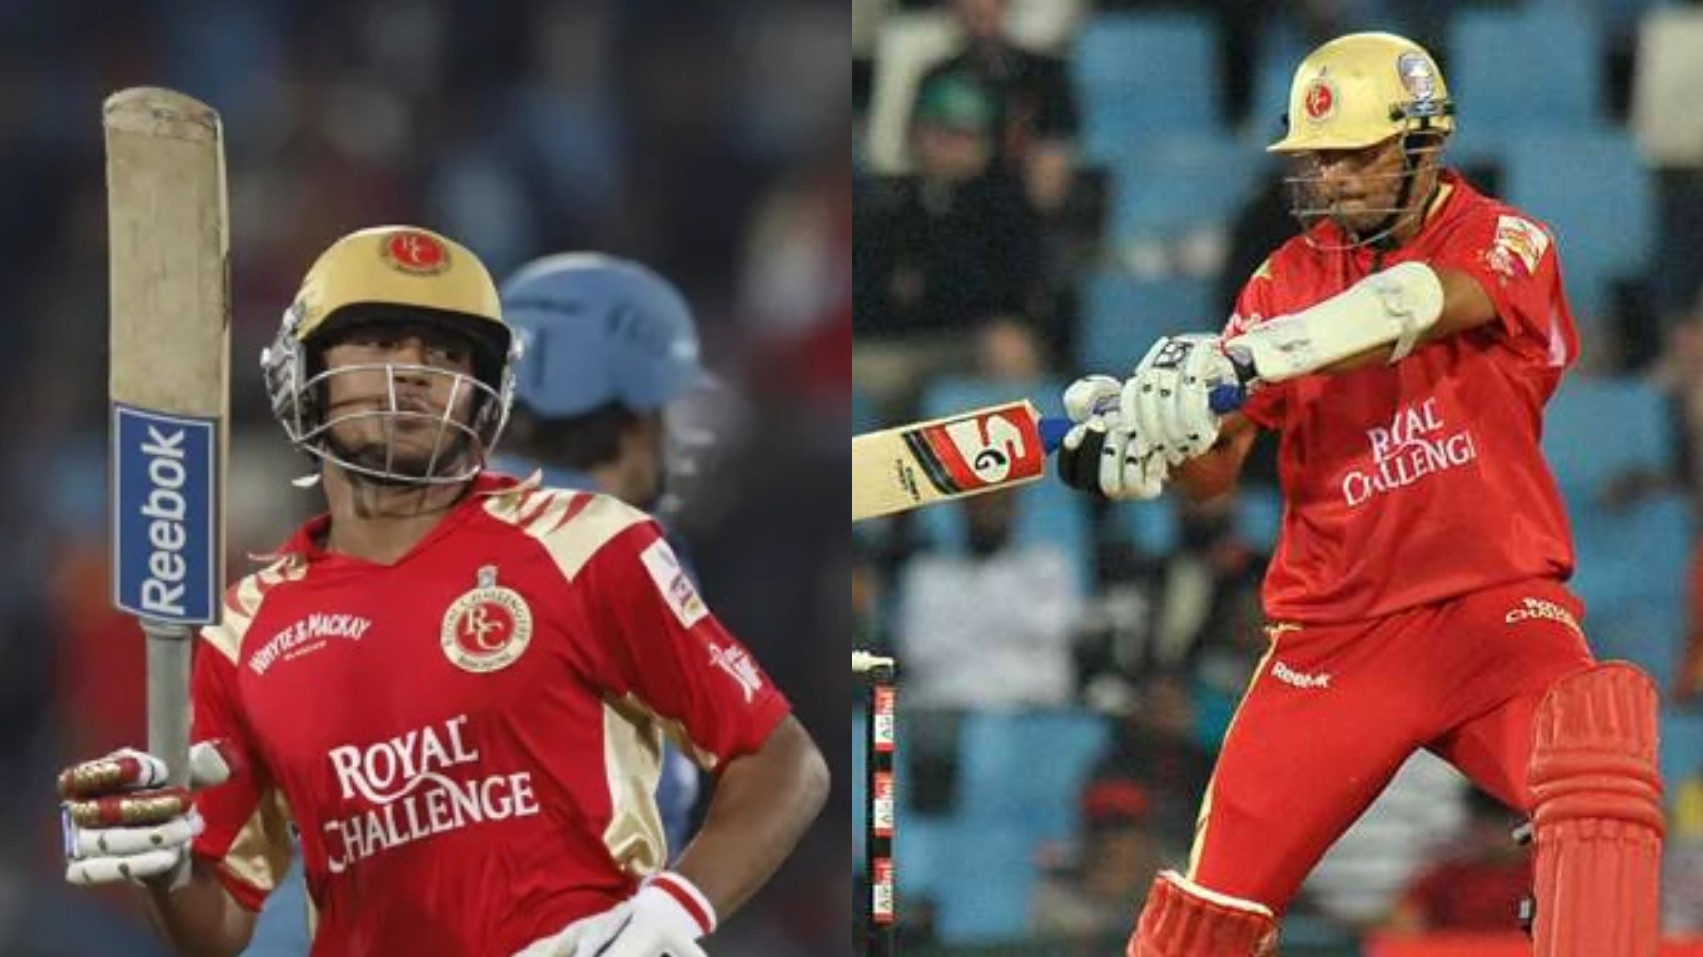 """""""Feeling of playing with my childhood idol Rahul Dravid was surreal,"""" says Manish Pandey"""